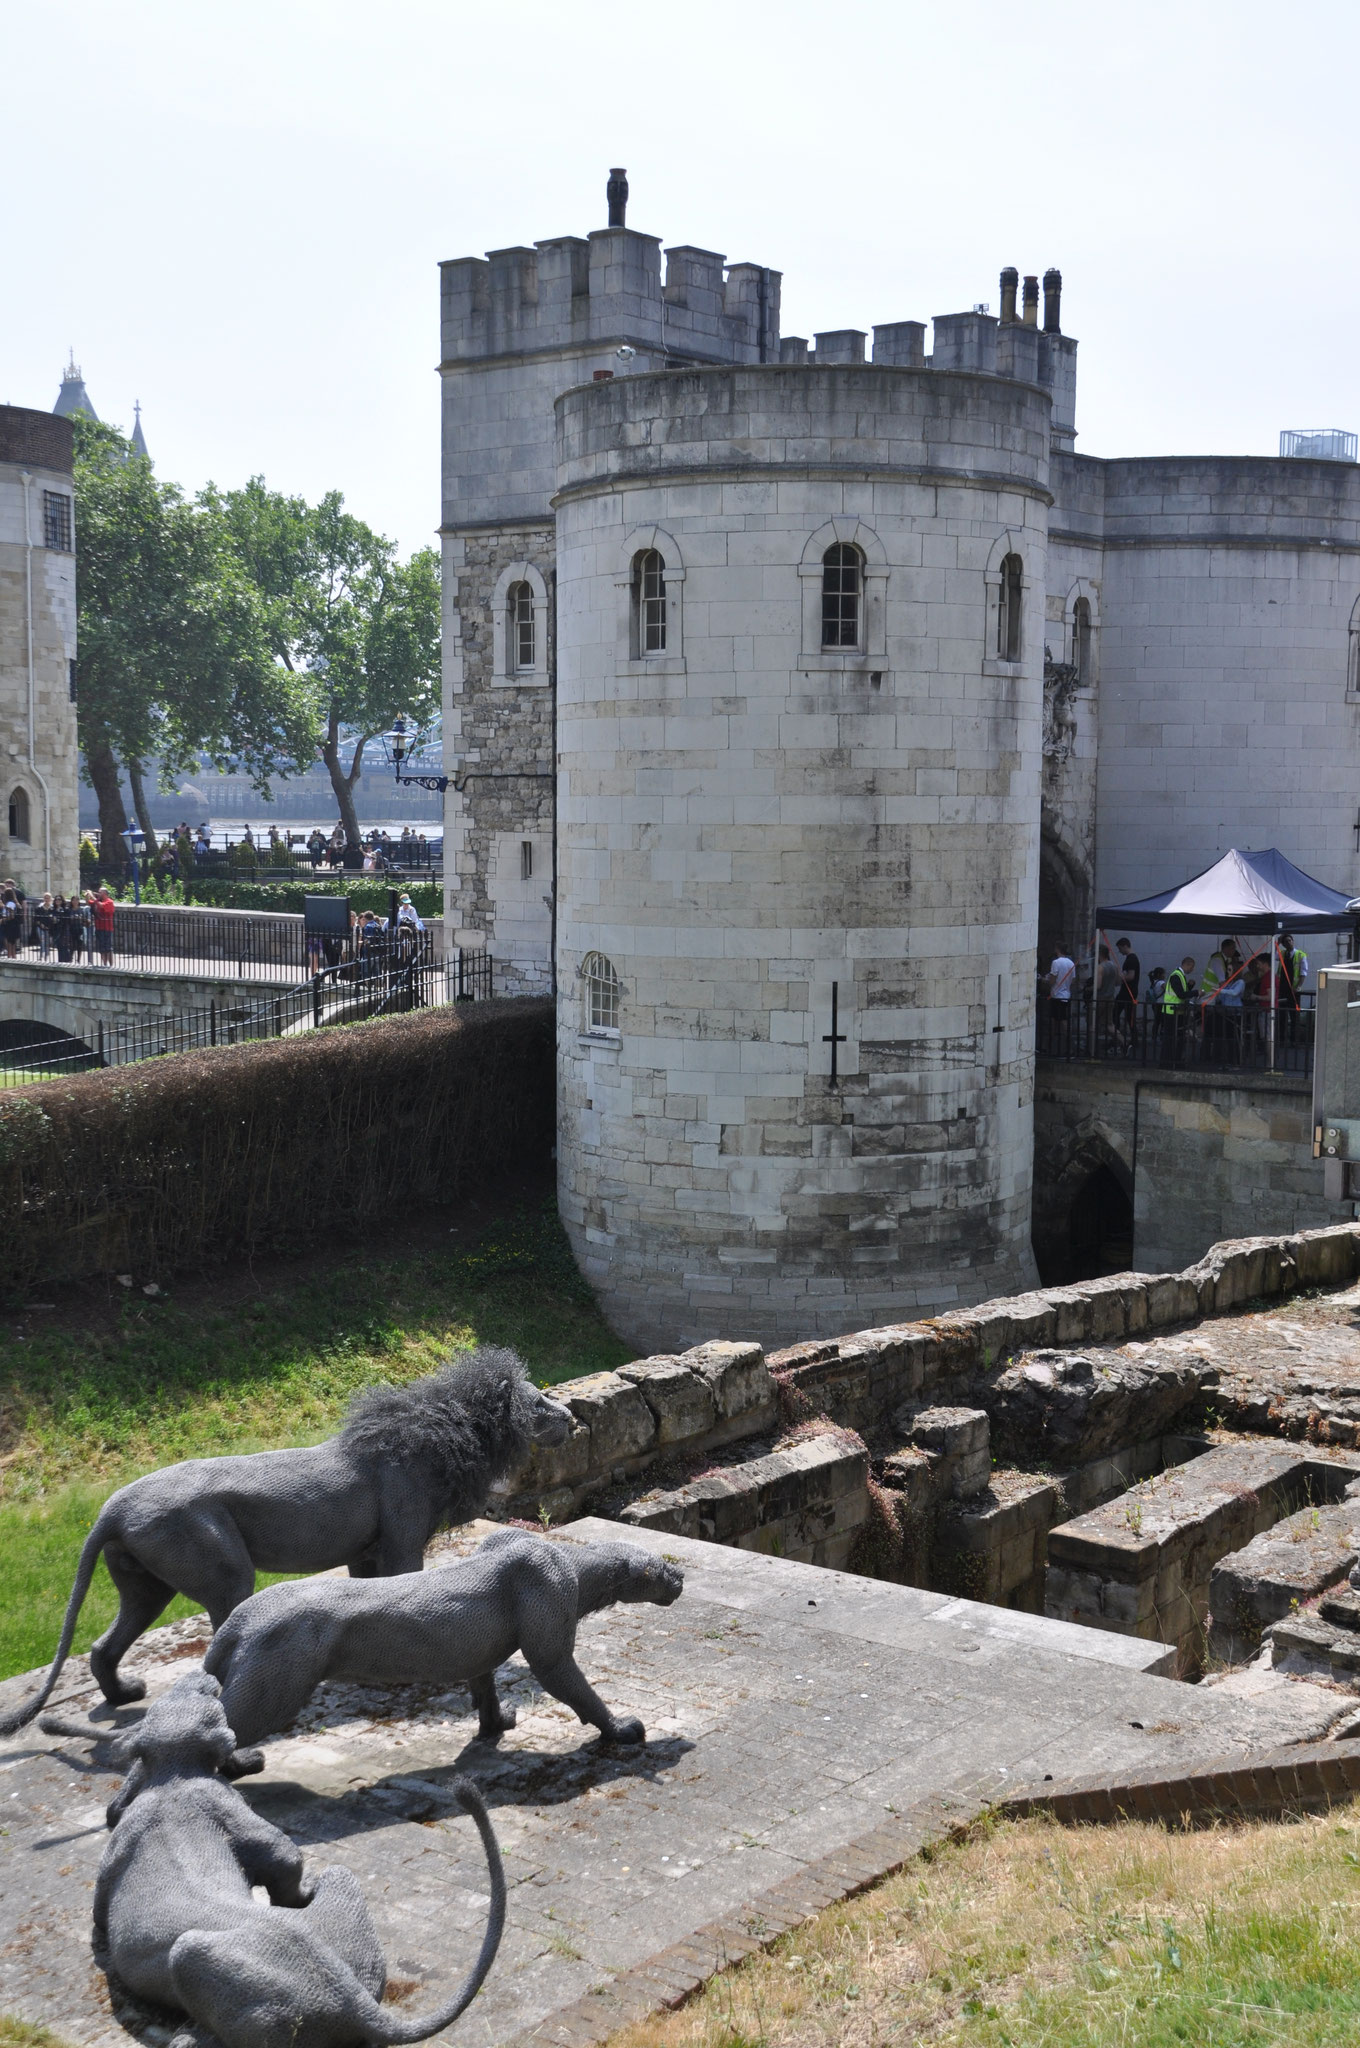 Tower Of London - 4 mins away